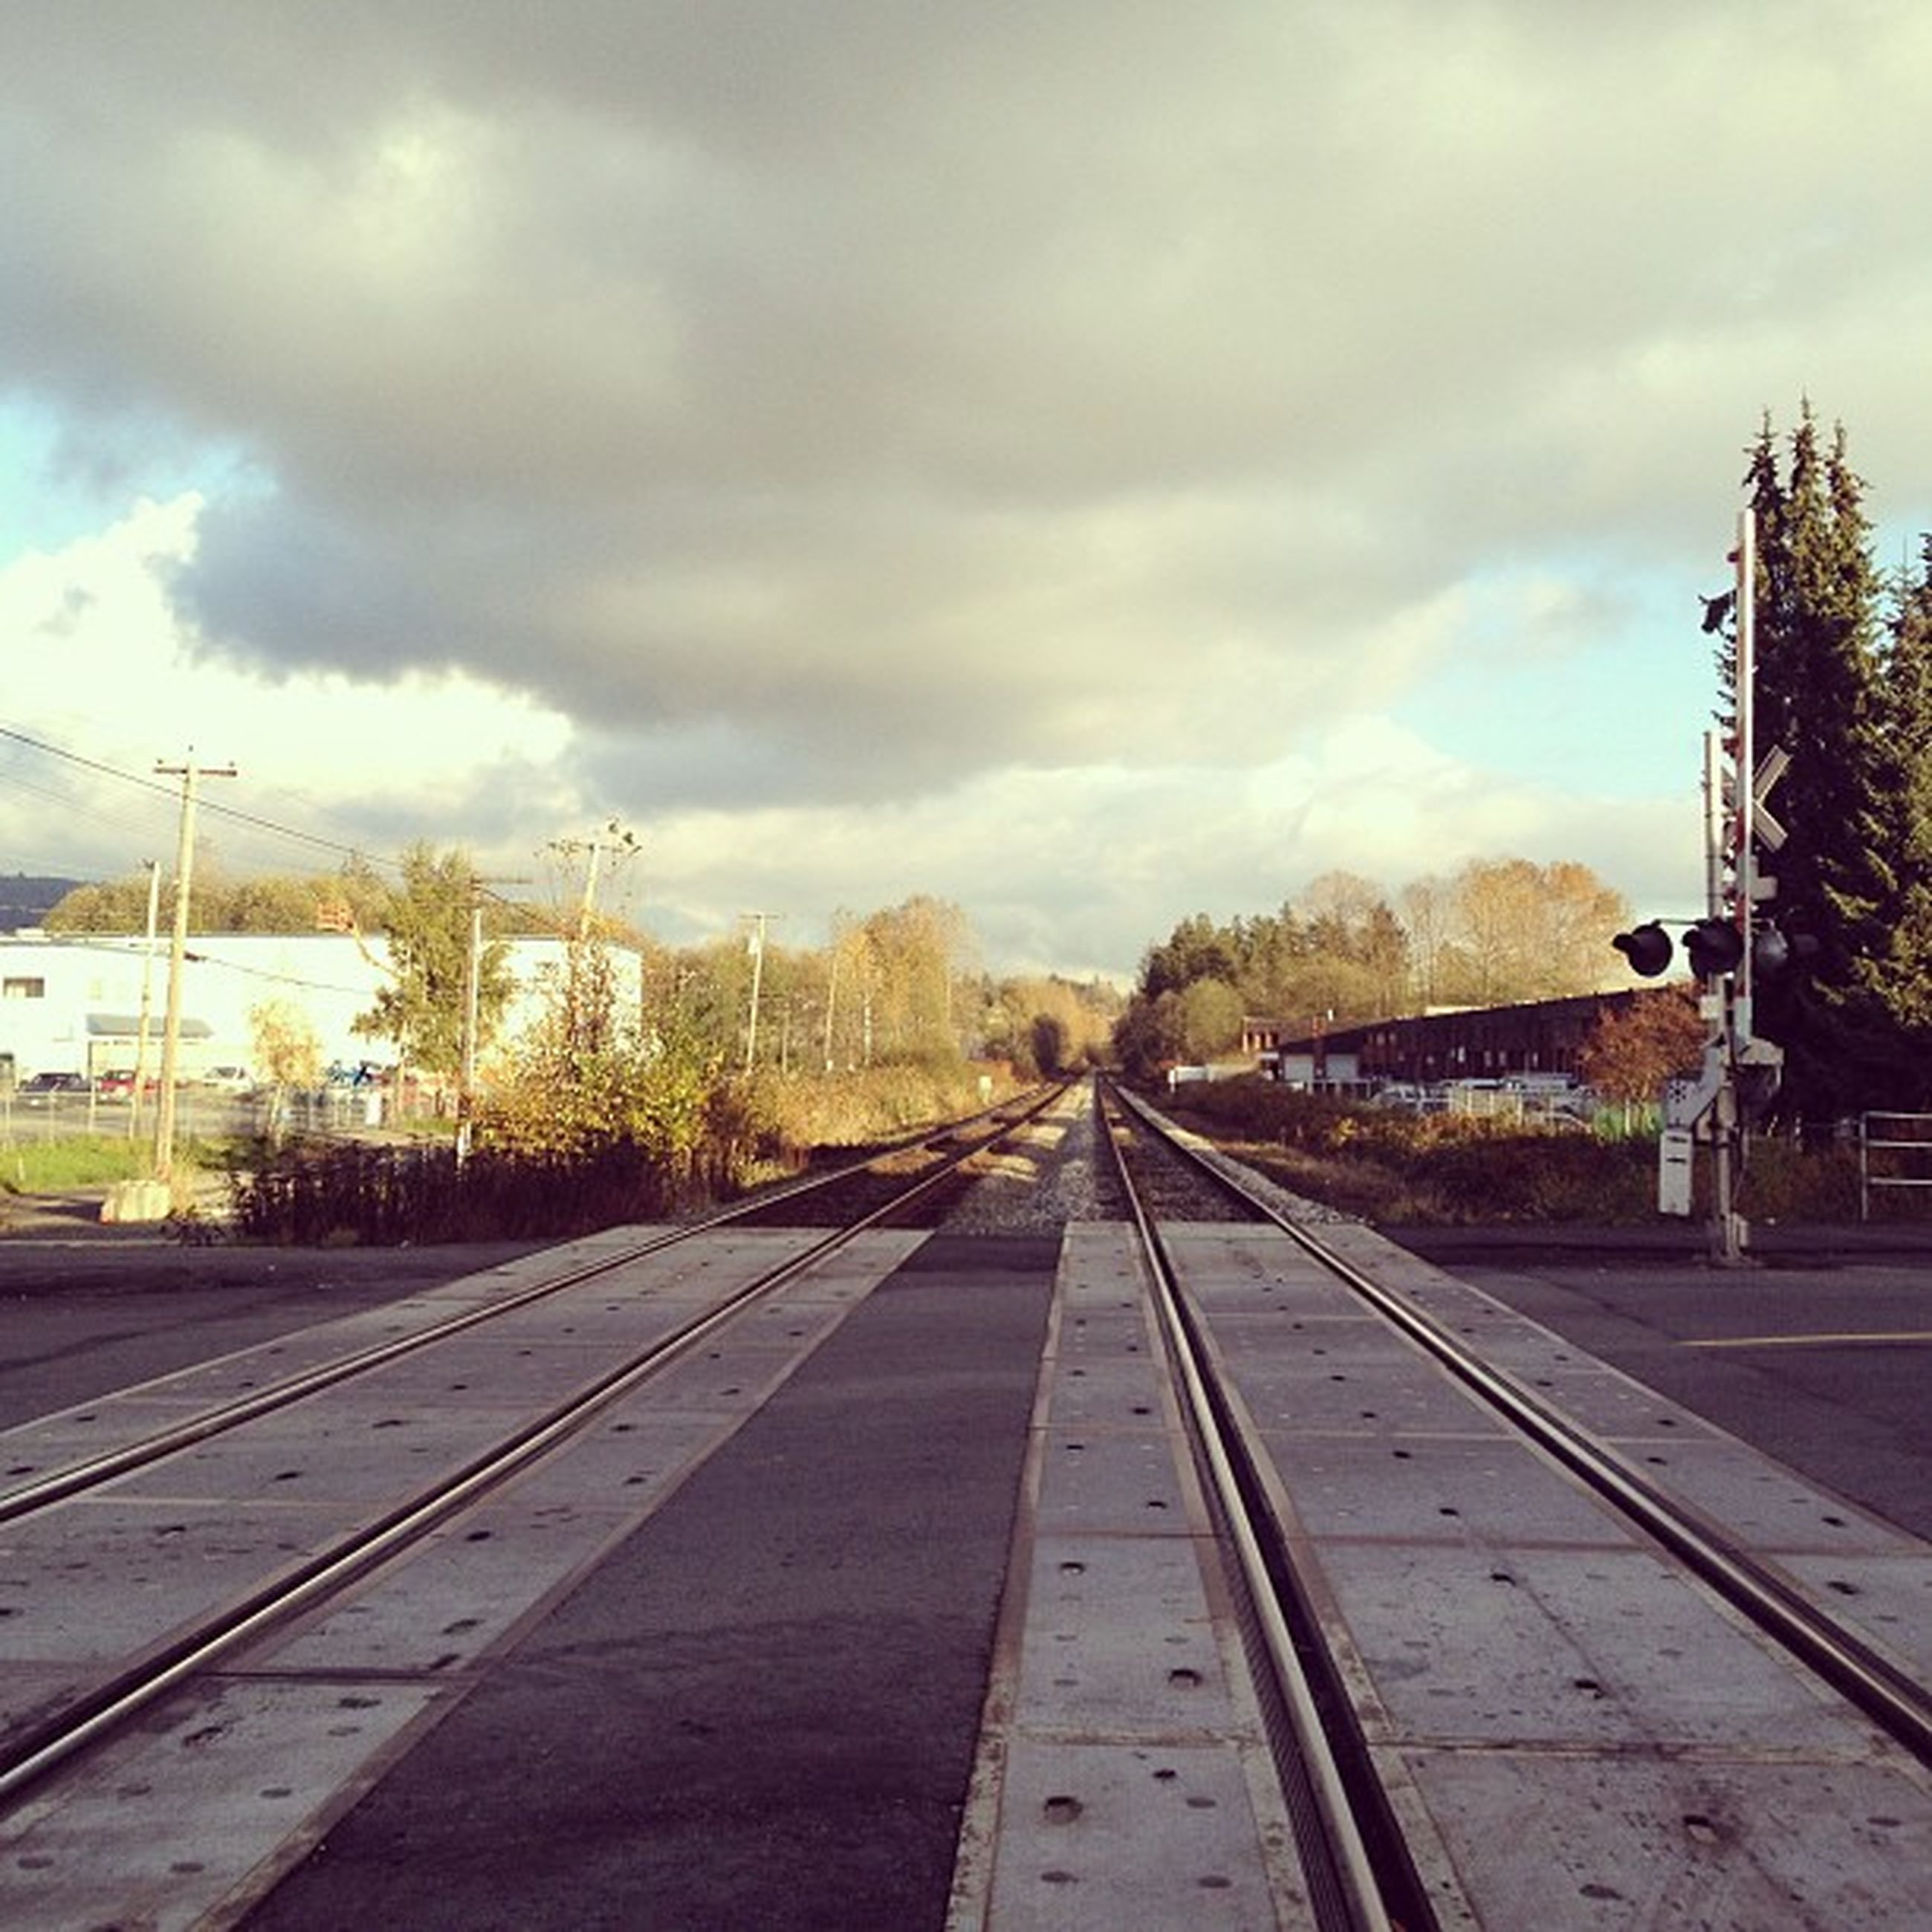 sky, cloud - sky, the way forward, transportation, cloudy, diminishing perspective, vanishing point, tree, cloud, road, built structure, building exterior, weather, architecture, street, railroad track, road marking, outdoors, overcast, day